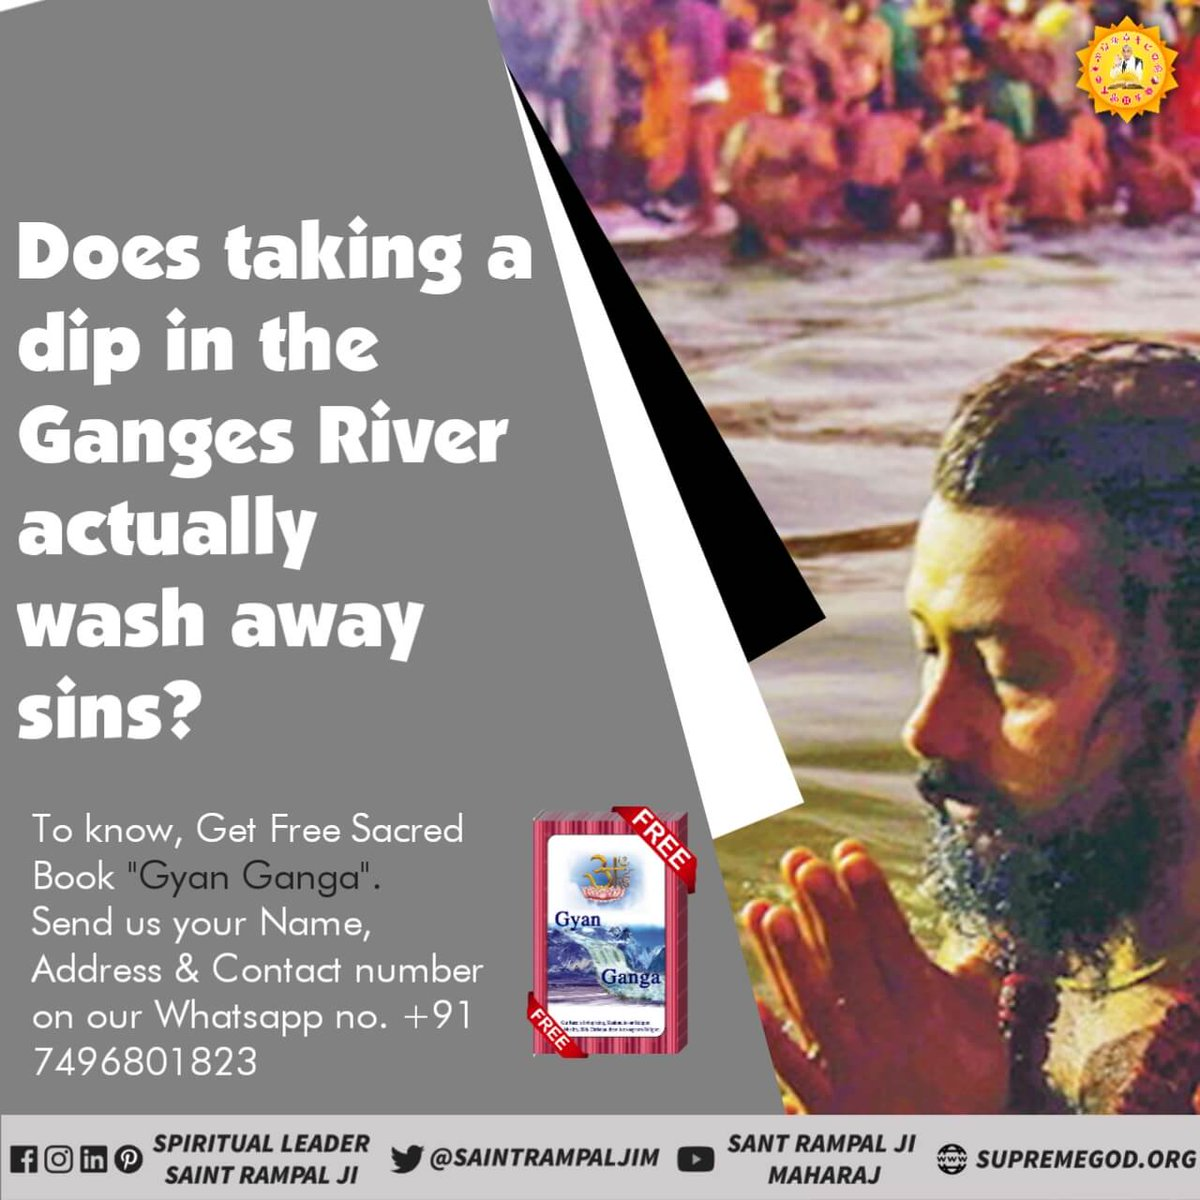 "#LordShiva  #Haridwar  Taking Holy dip in Ganga is not really right way of worship. get free book ""Gyan Ganga"" and know the reason. And watch Ishwar channel 8 :30pm"